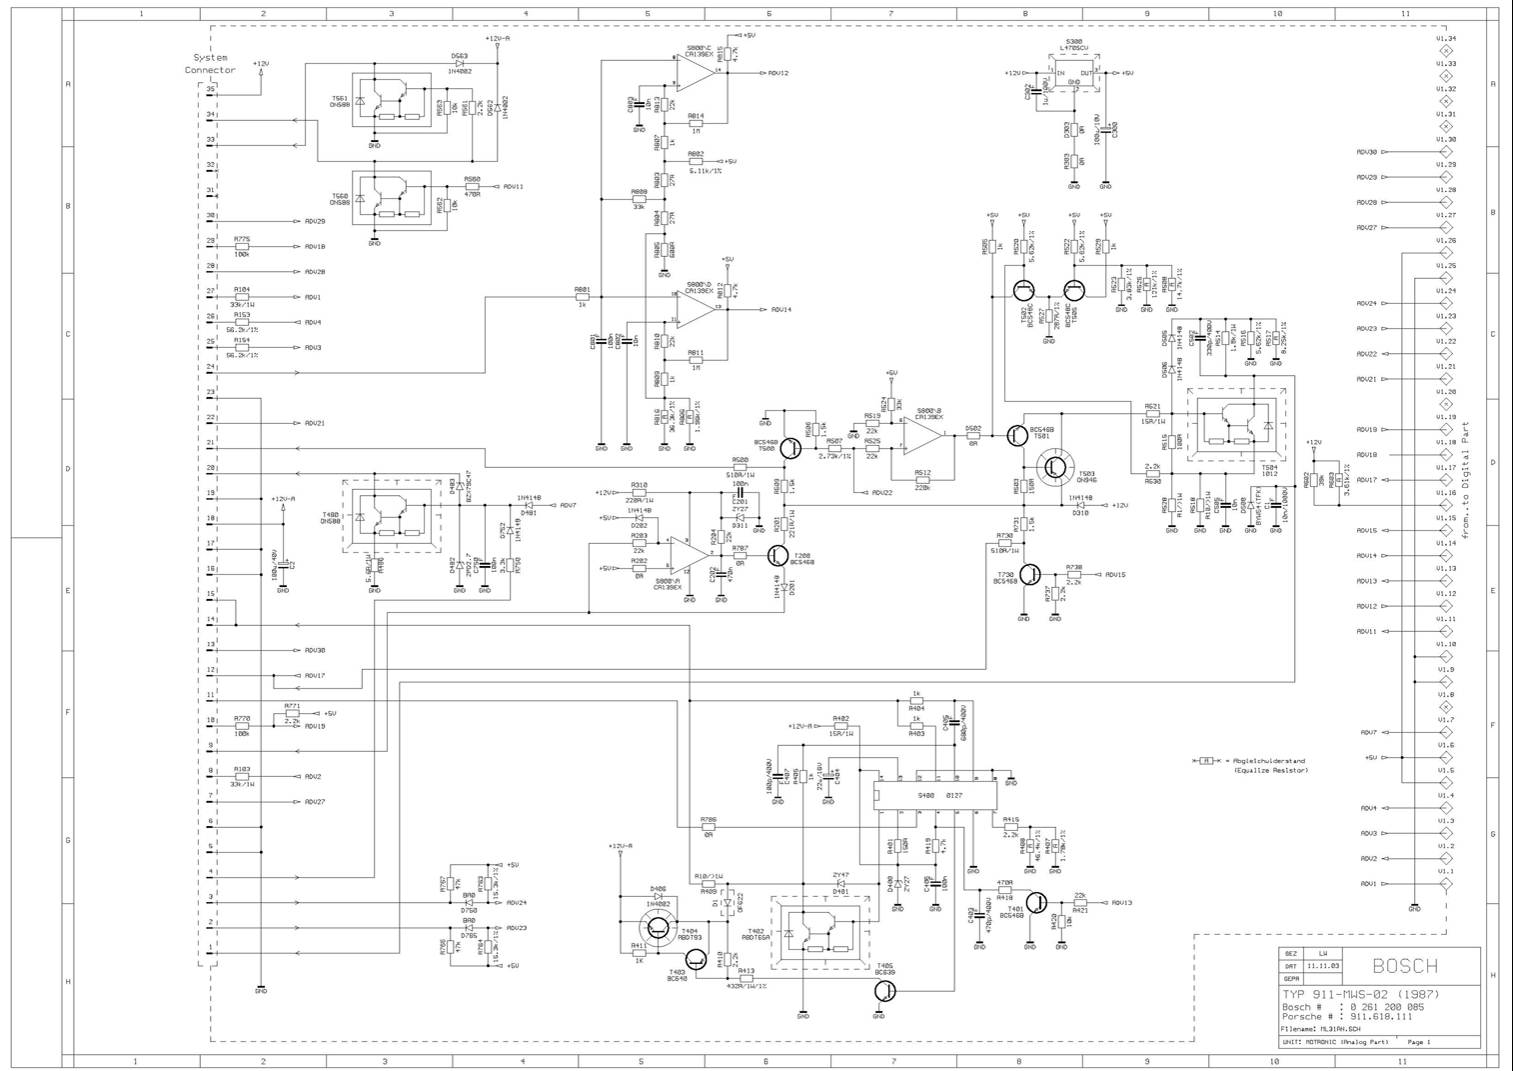 dme na 1 dme wiring diagram normally aspirated 944 porsche 944 wiring diagram at virtualis.co